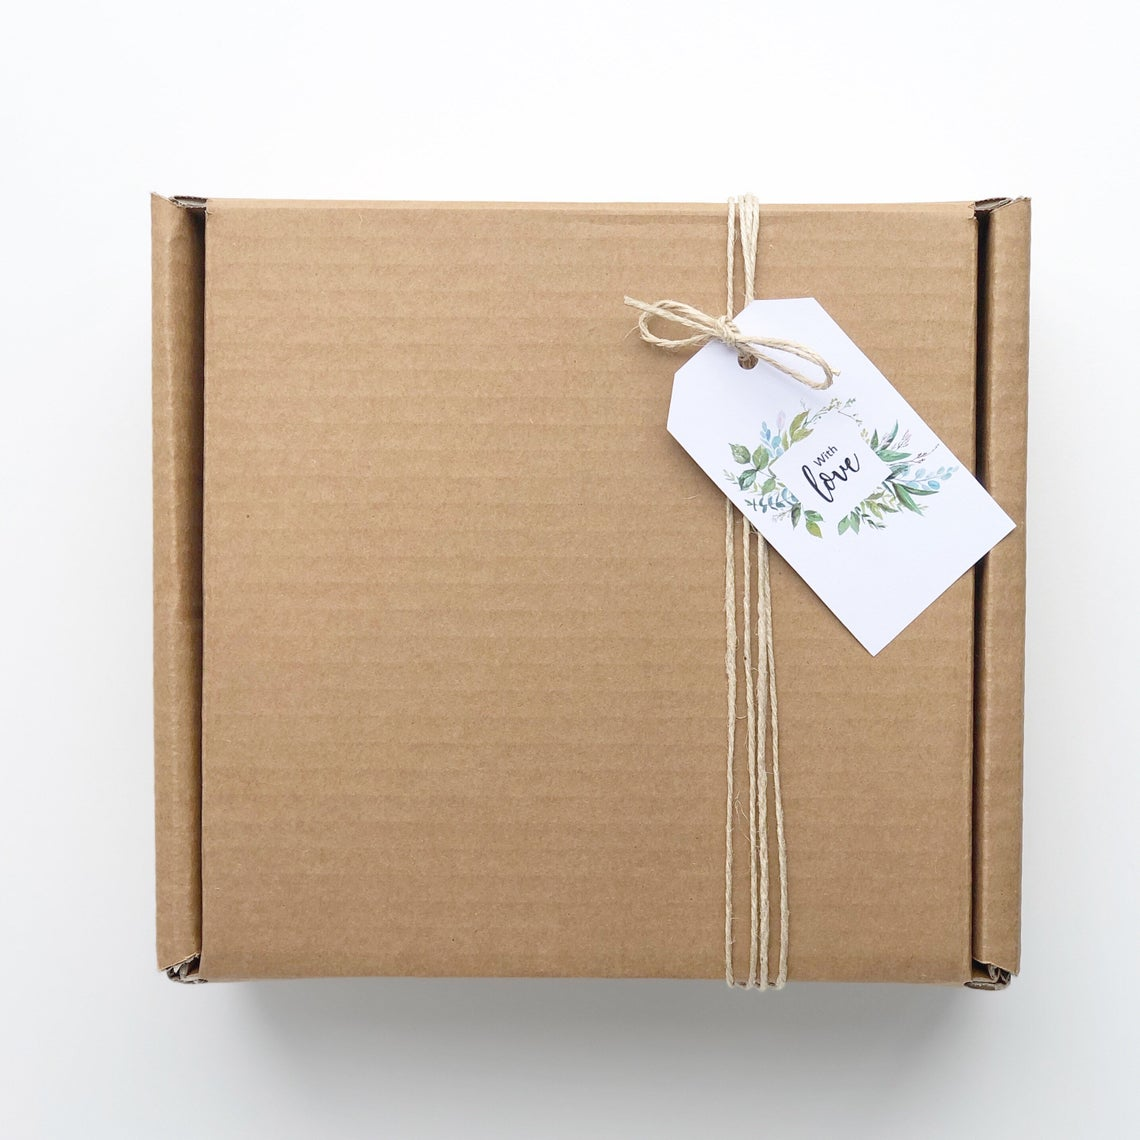 tea for two gift box set in storm hunter and the fox